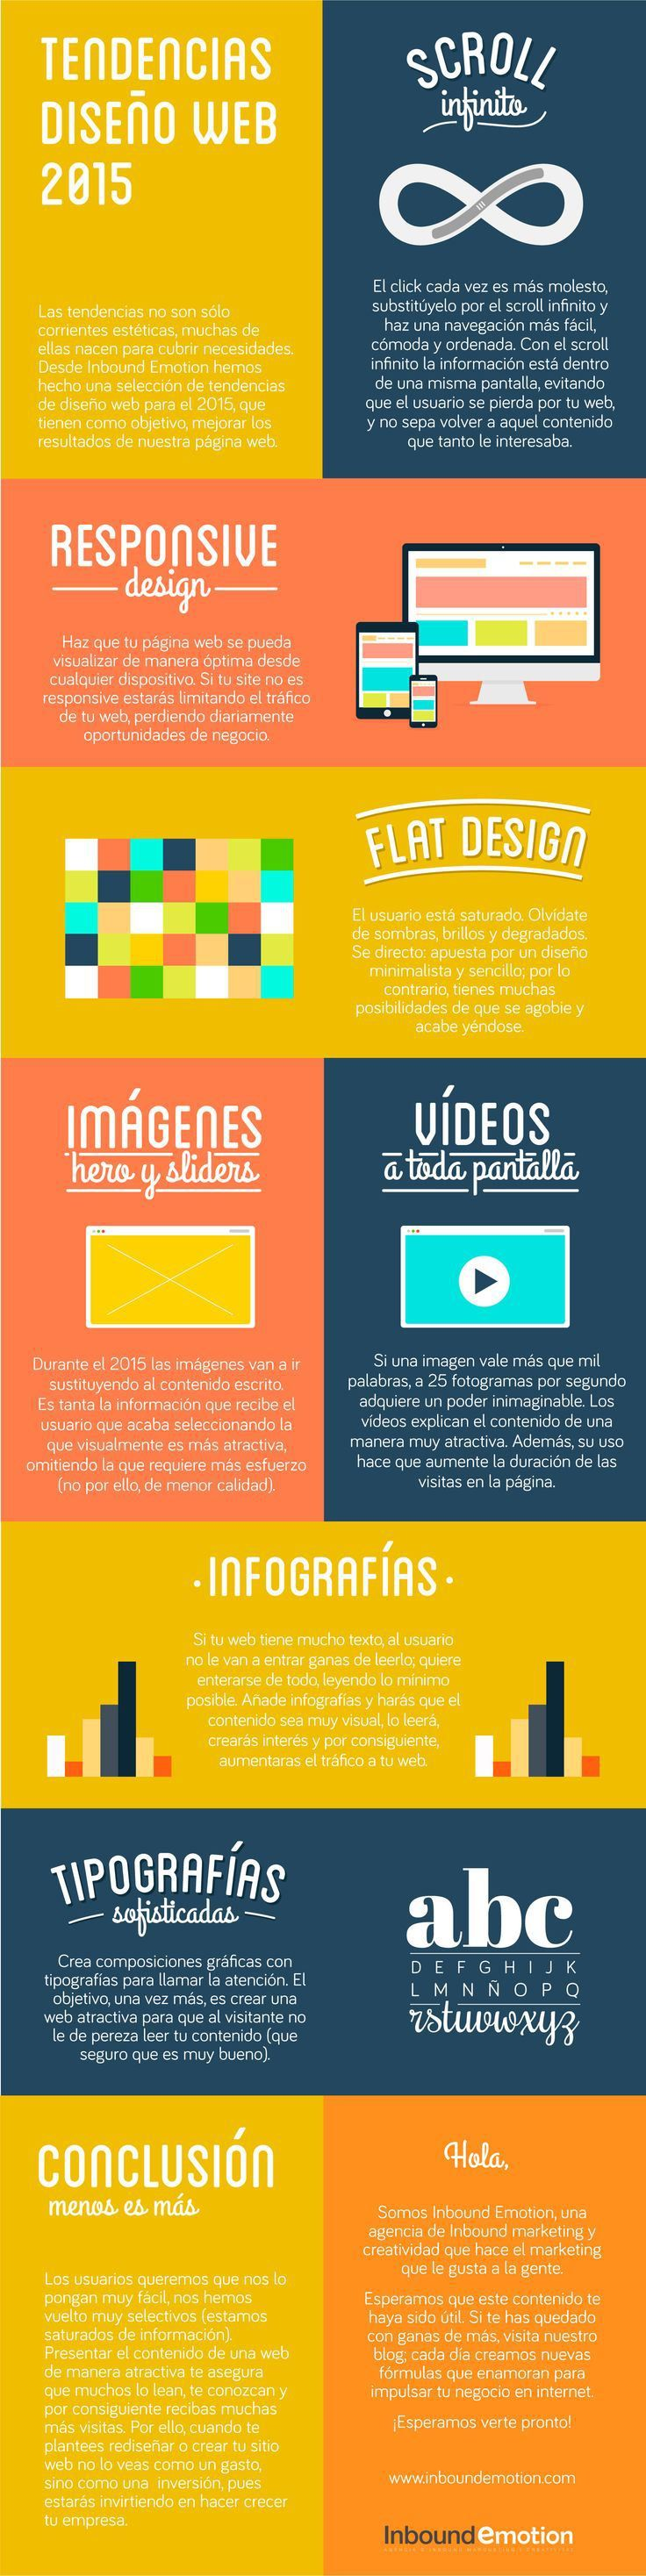 Tendencias-diseno-web-2015